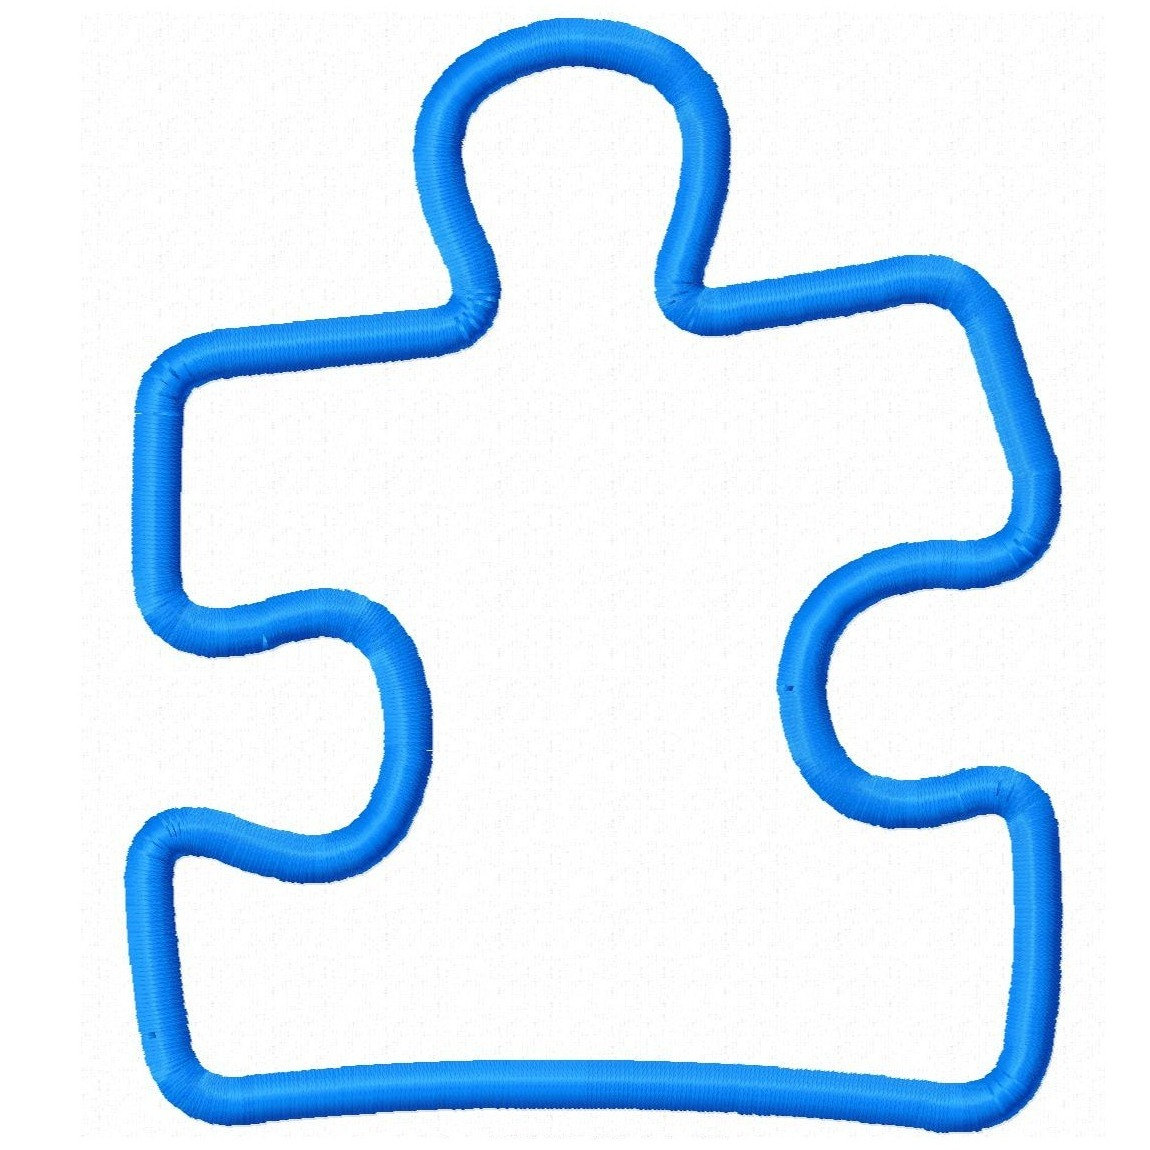 Autism Puzzle Piece Drawing Free Image